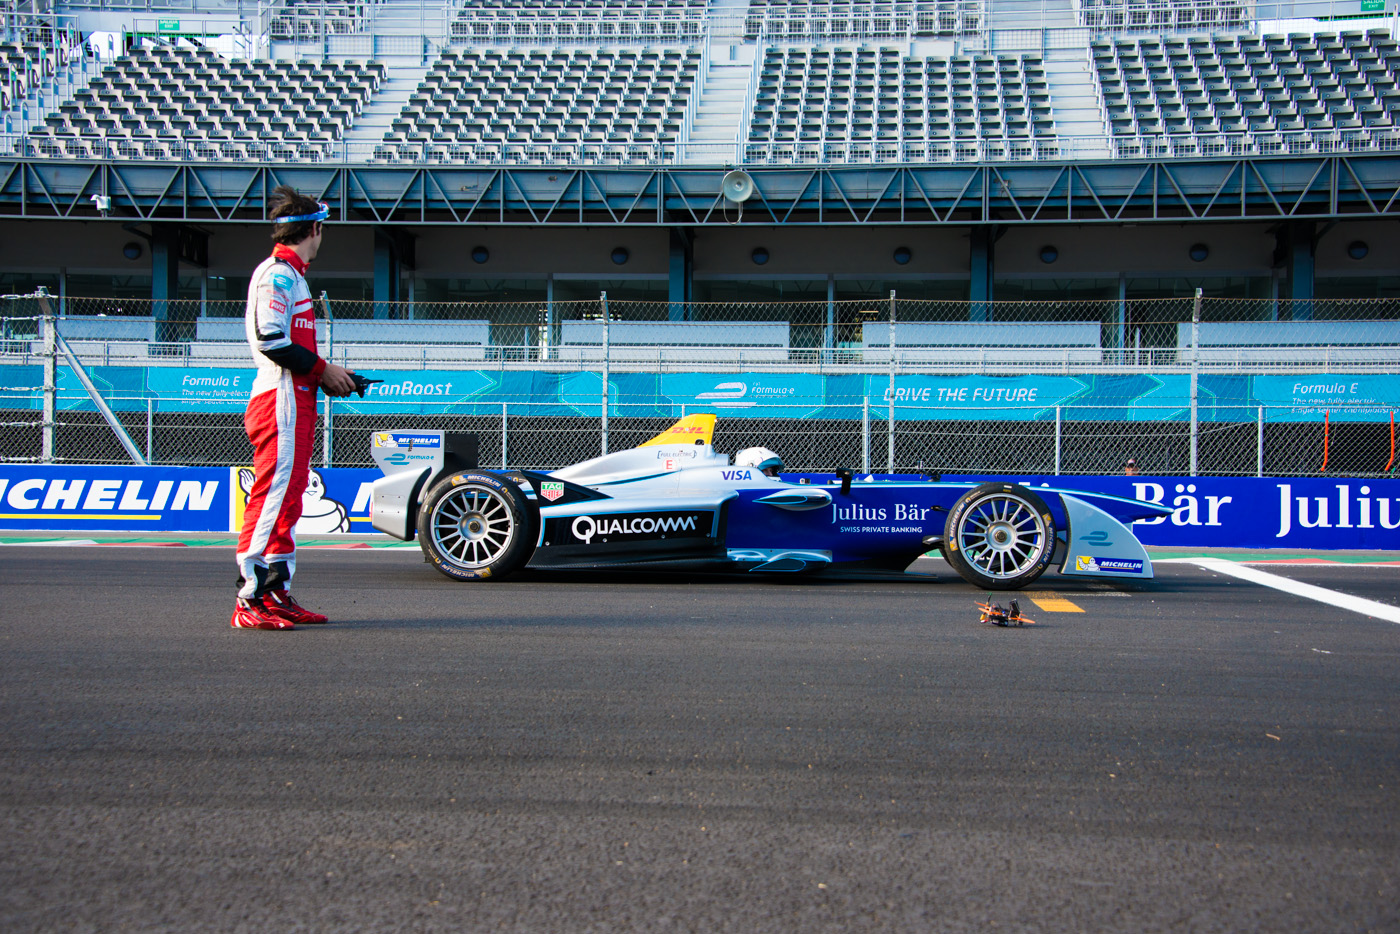 Mahindra Racing driver Bruno Senna, gets ready to pit his Lumenier QAV210 quadcopter against American racer Scott Speed who is driving the Spark-Renault SRT_01E Formula E car. The drone versus car race was filmed at the Autódromo Hermanos Rodríguez circuit in Mexico City.